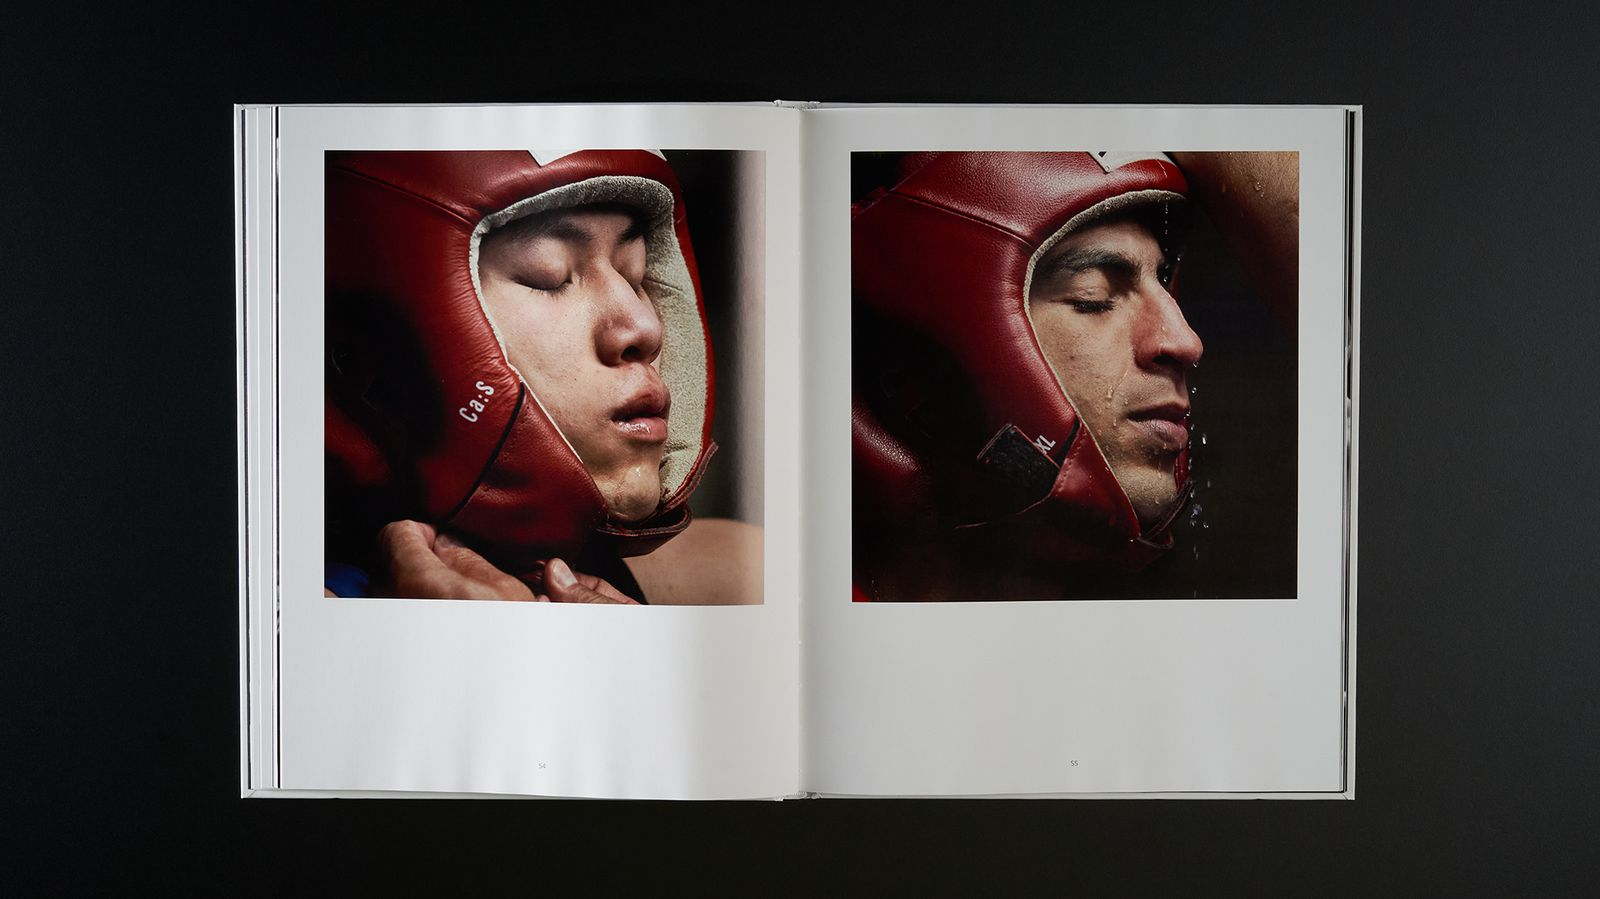 Seconds out, Faces of boxing - Spread 3.jpg